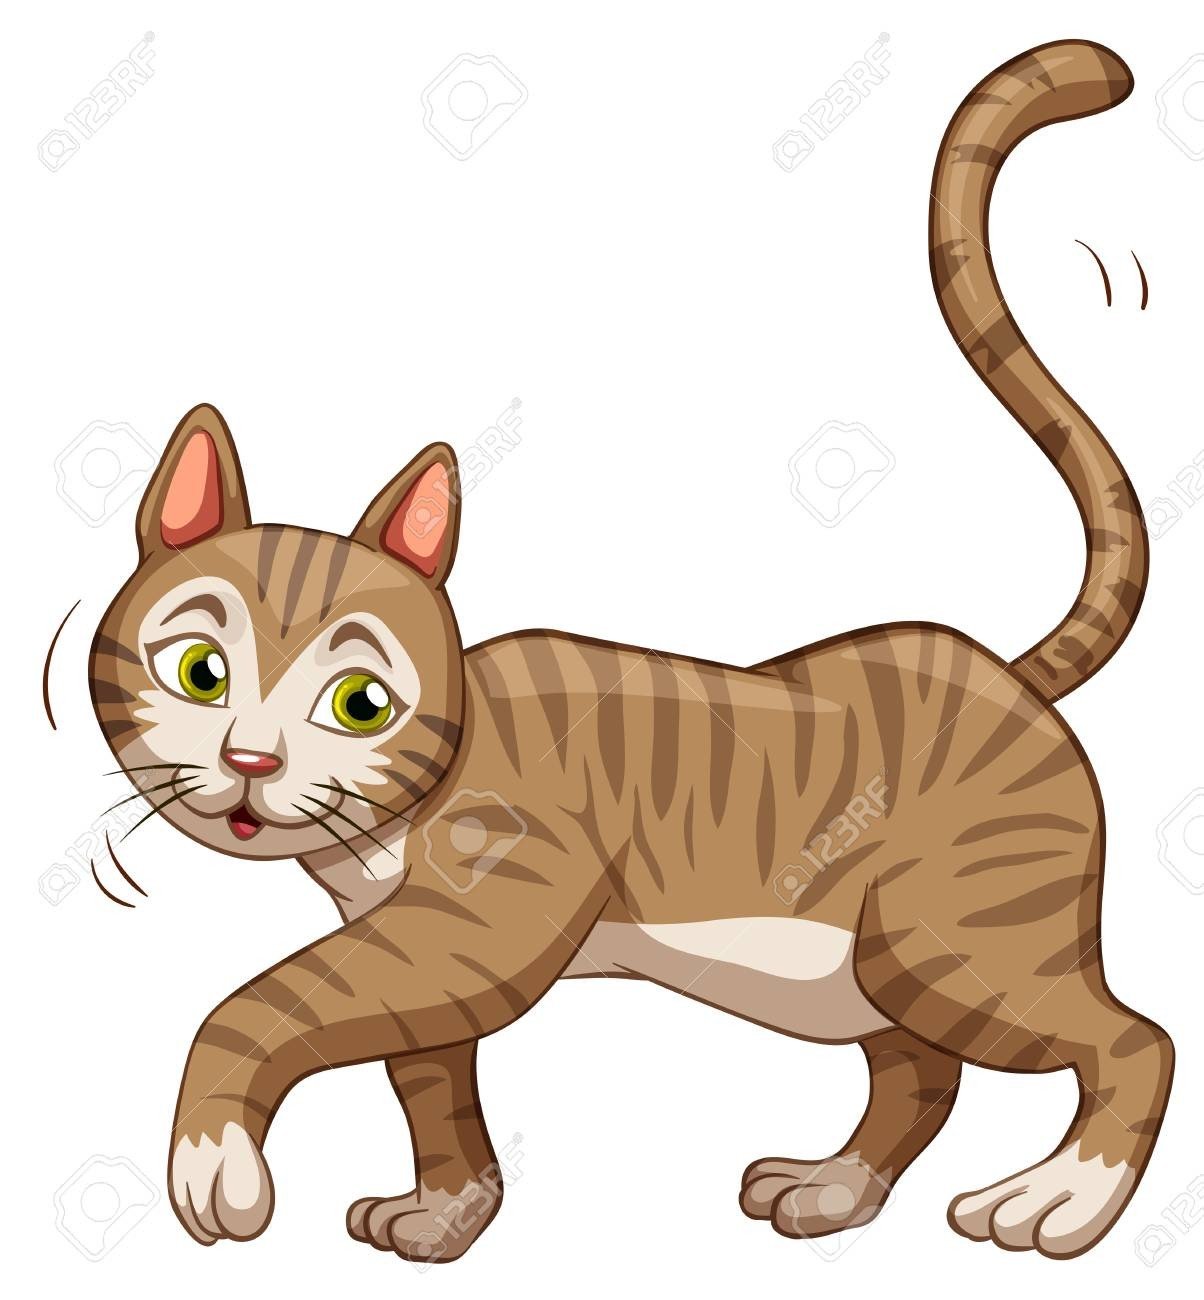 Cats clipart walking. On brown cat little